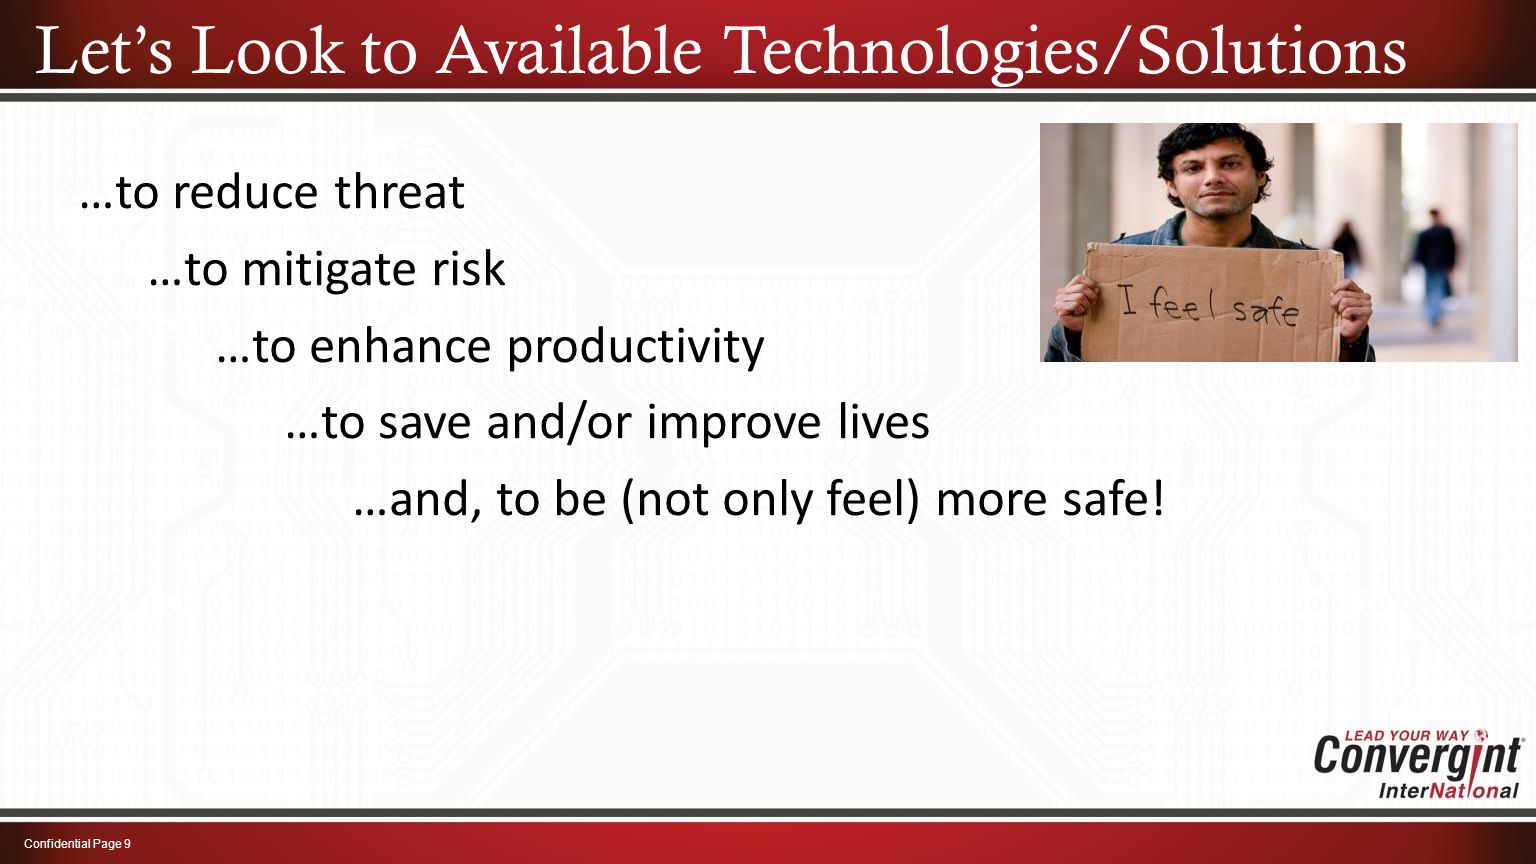 …to reduce threat …to mitigate risk …to enhance productivity …to save and/or improve lives …and, to be (not only feel) more safe! Let's Look to Availa